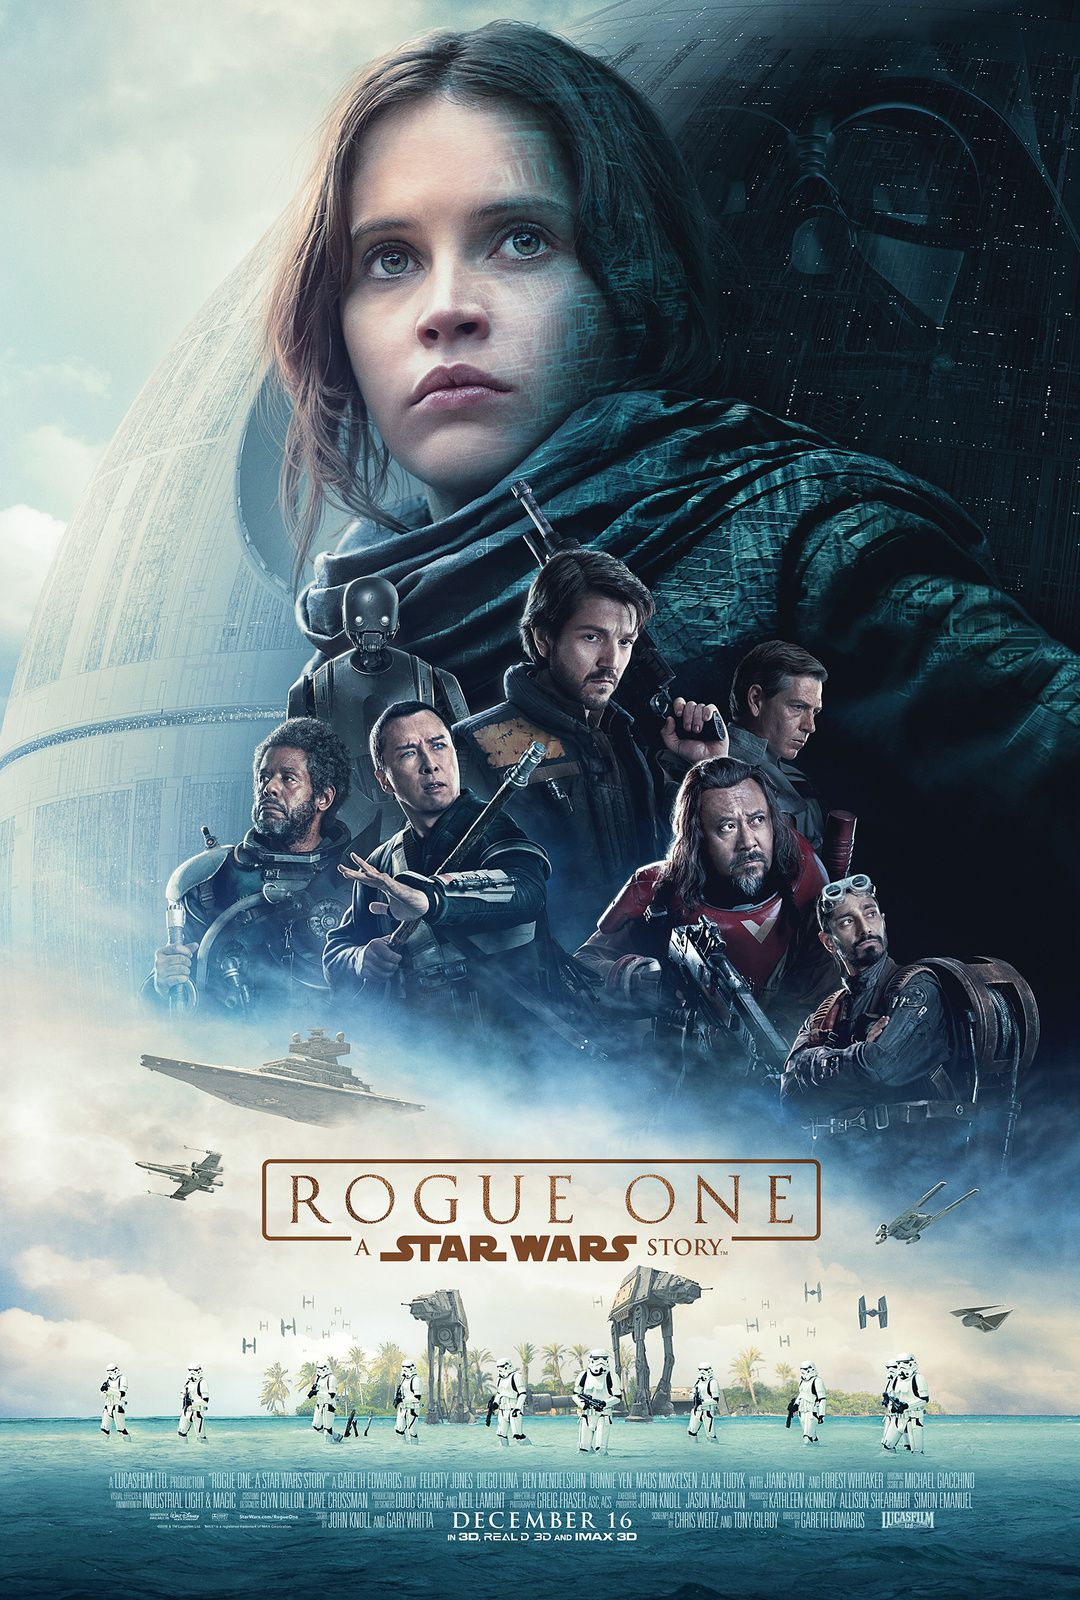 [CINE] Mon avis sur ROGUE ONE: A STAR WARS STORY